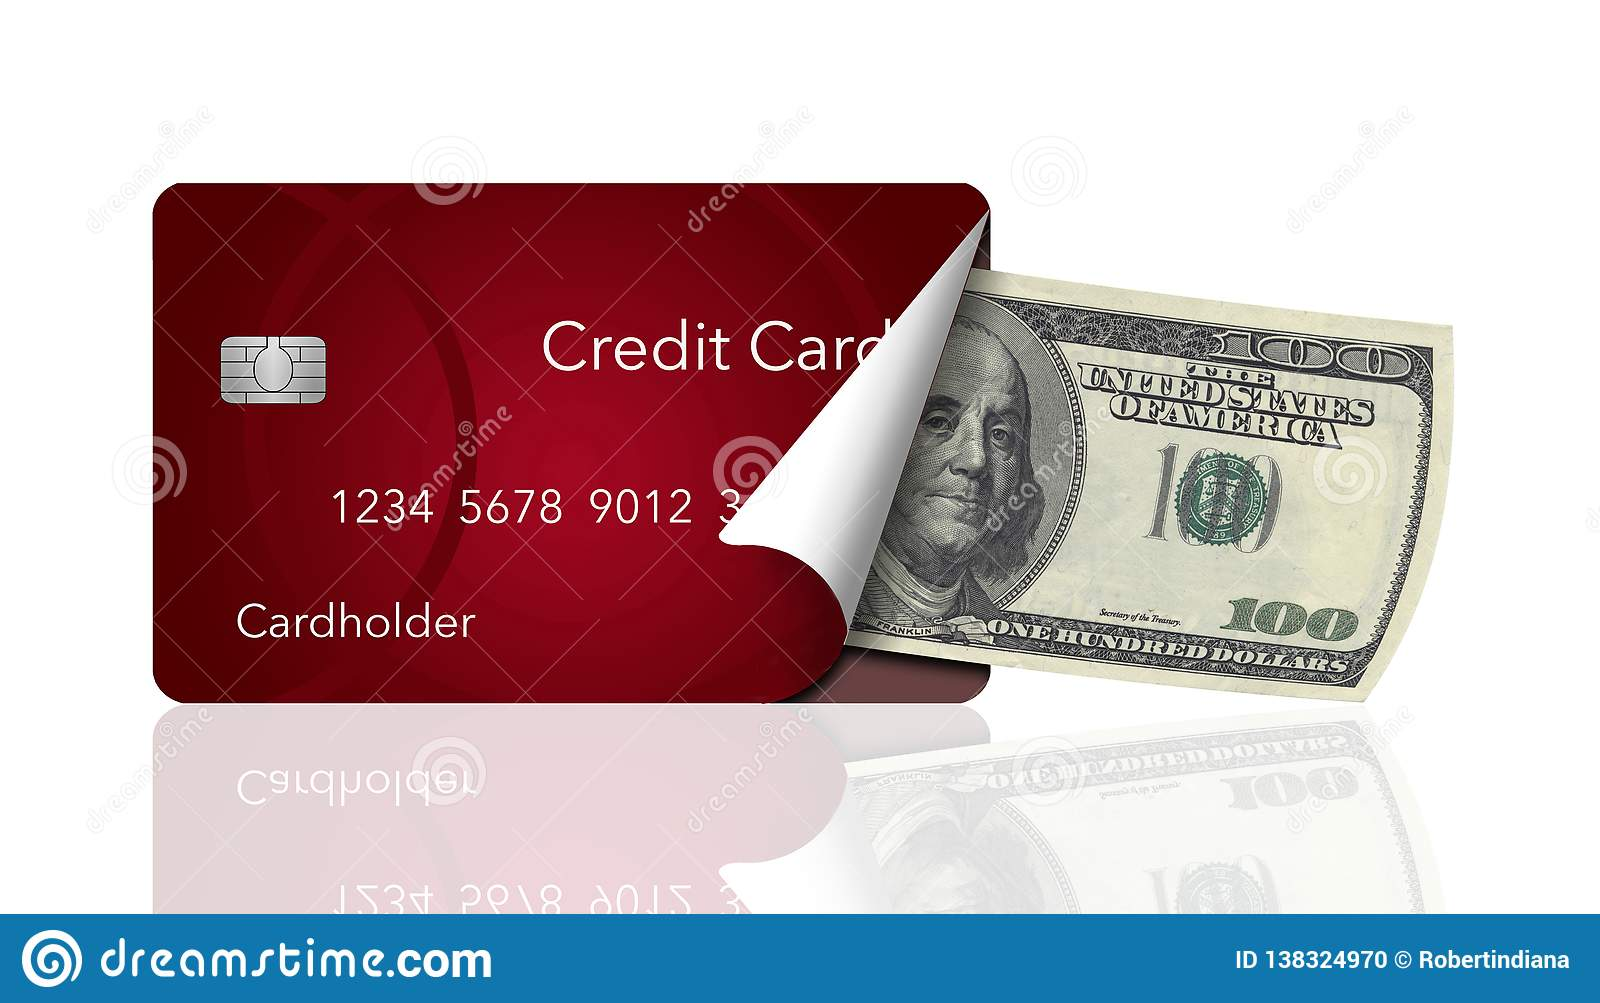 A credit card is peeled back to reveal a one hundred dollar bill inside. This illustrates carrying a card instead of cash or any